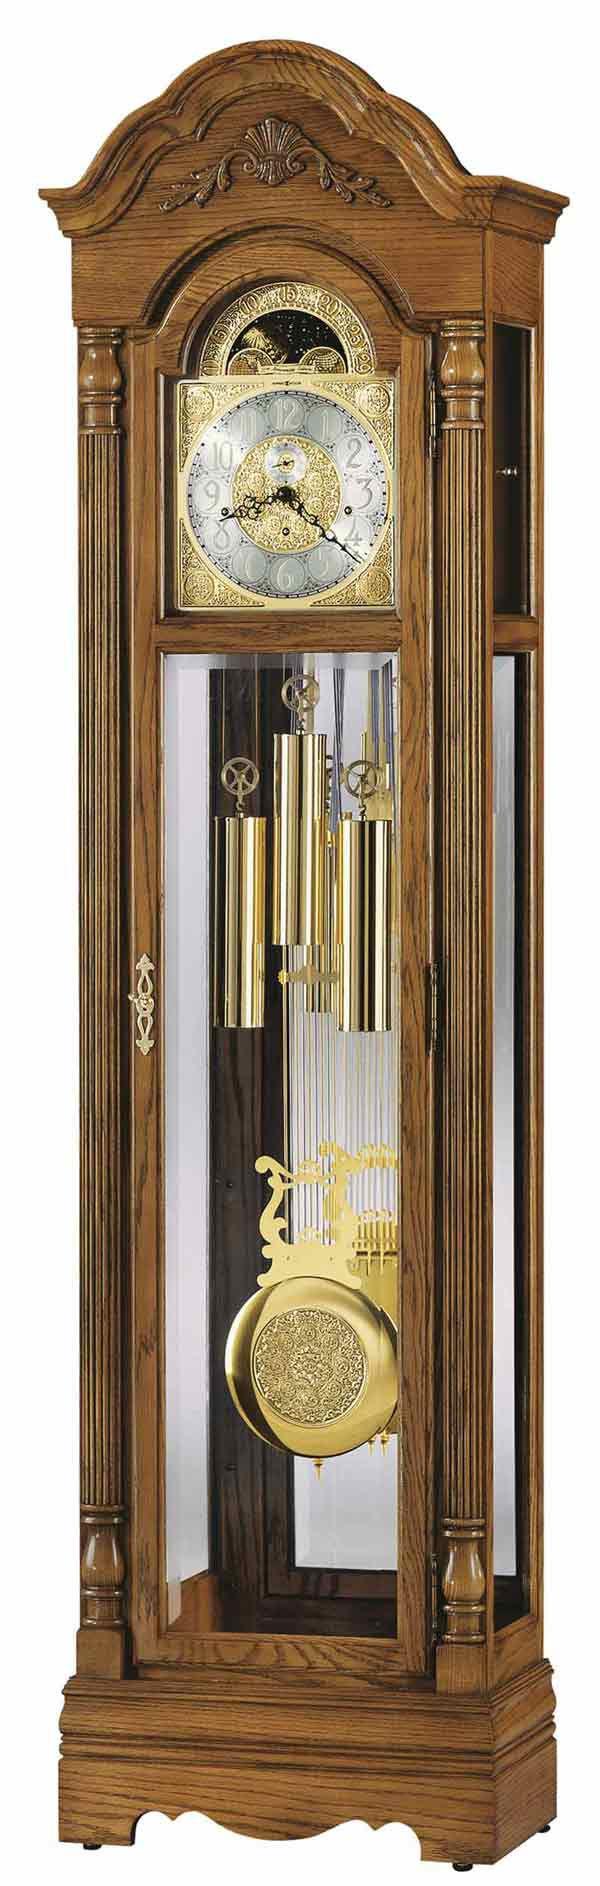 Detailed Image Of The Howard Miller Gavin 610 985 Grandfather Clock